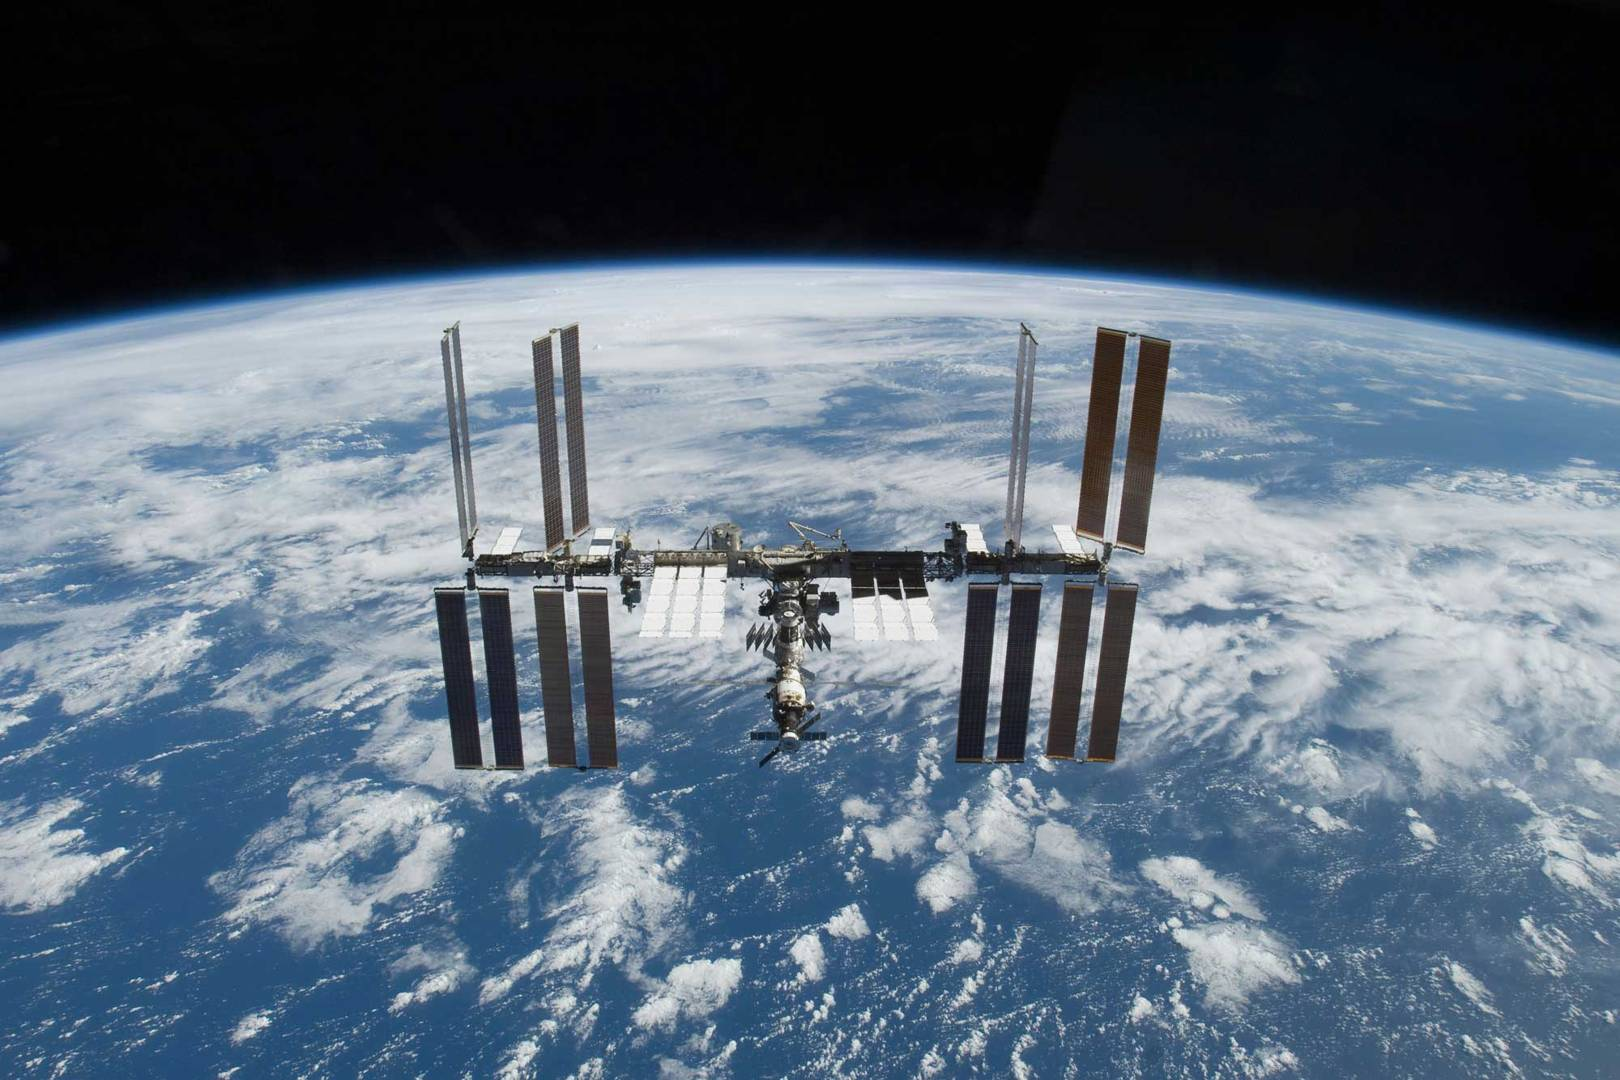 Life on the Space Station is about to get really weird and lonely